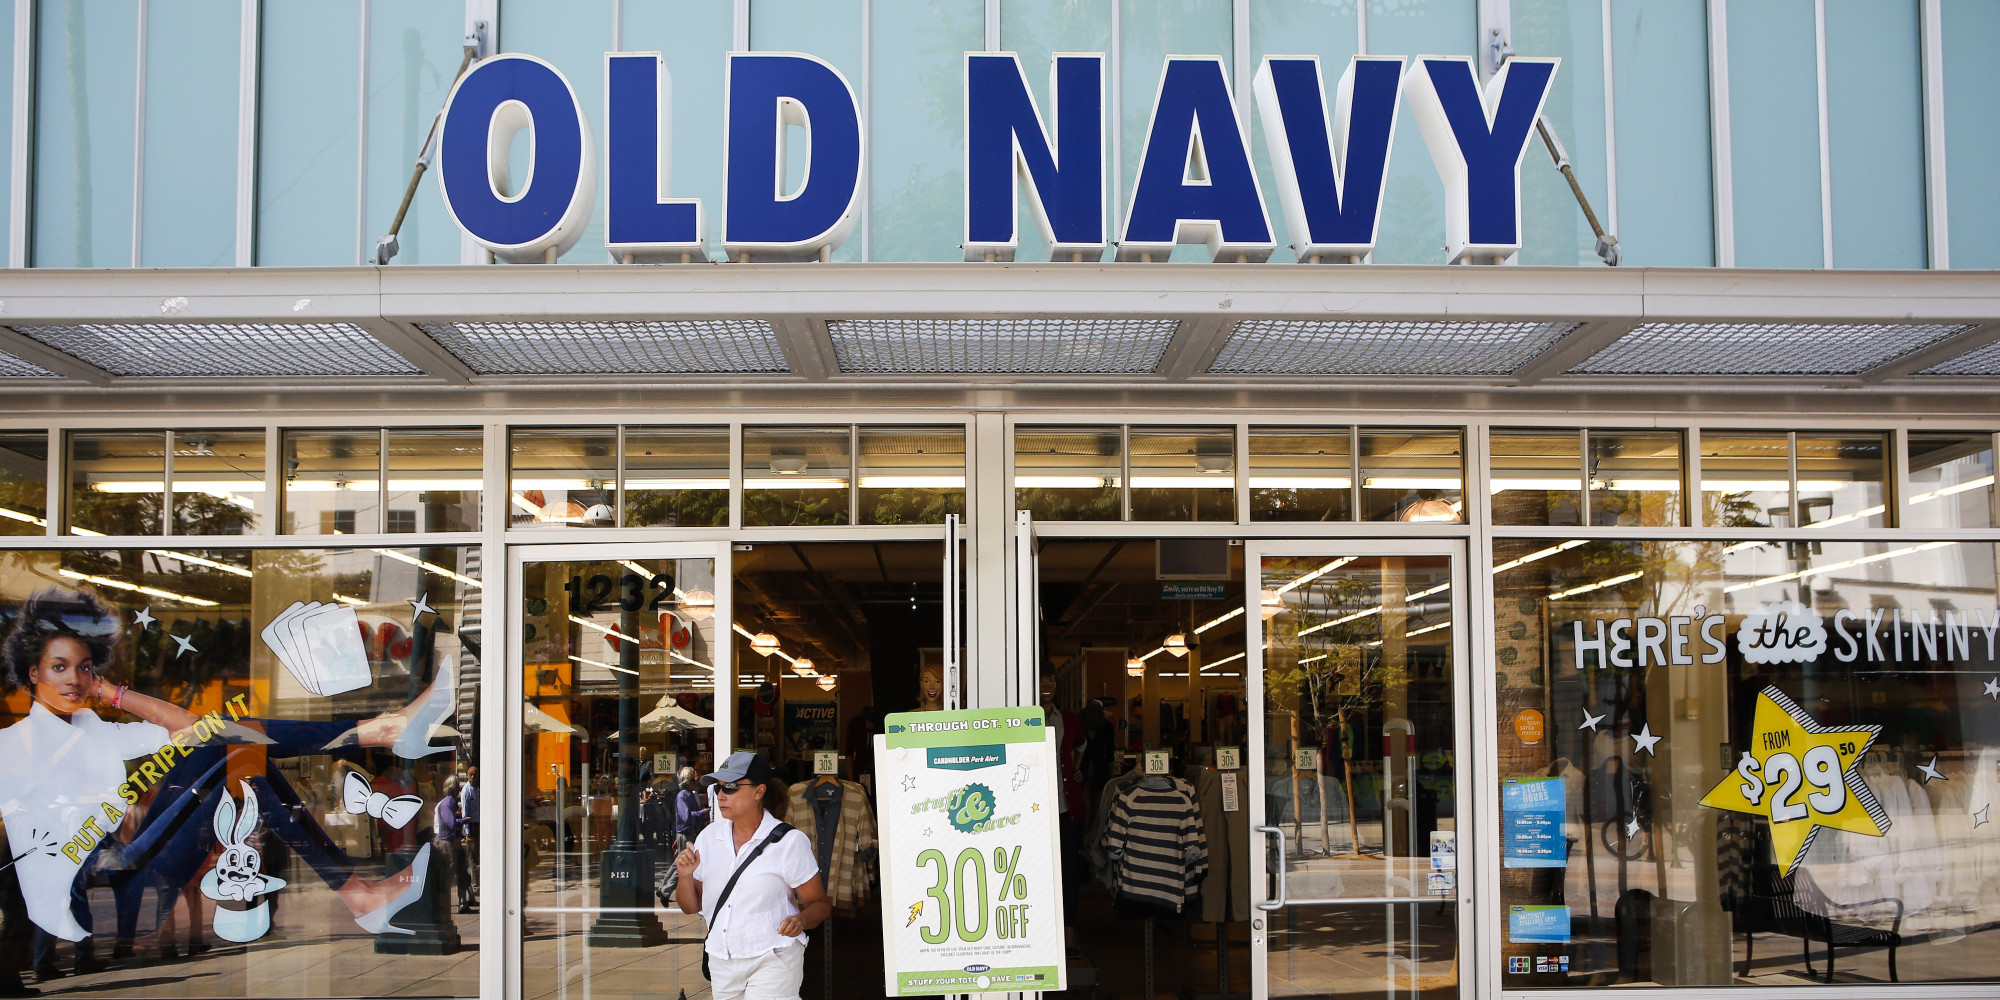 Galaxy Army Navy West 30th StreetChelsea New York, NY (between 6th-7th Ave) map and directions skachat-clas.cf Each store is independently owned and operated. Store hours, product selection, prices and policies may vary and are subject to change.